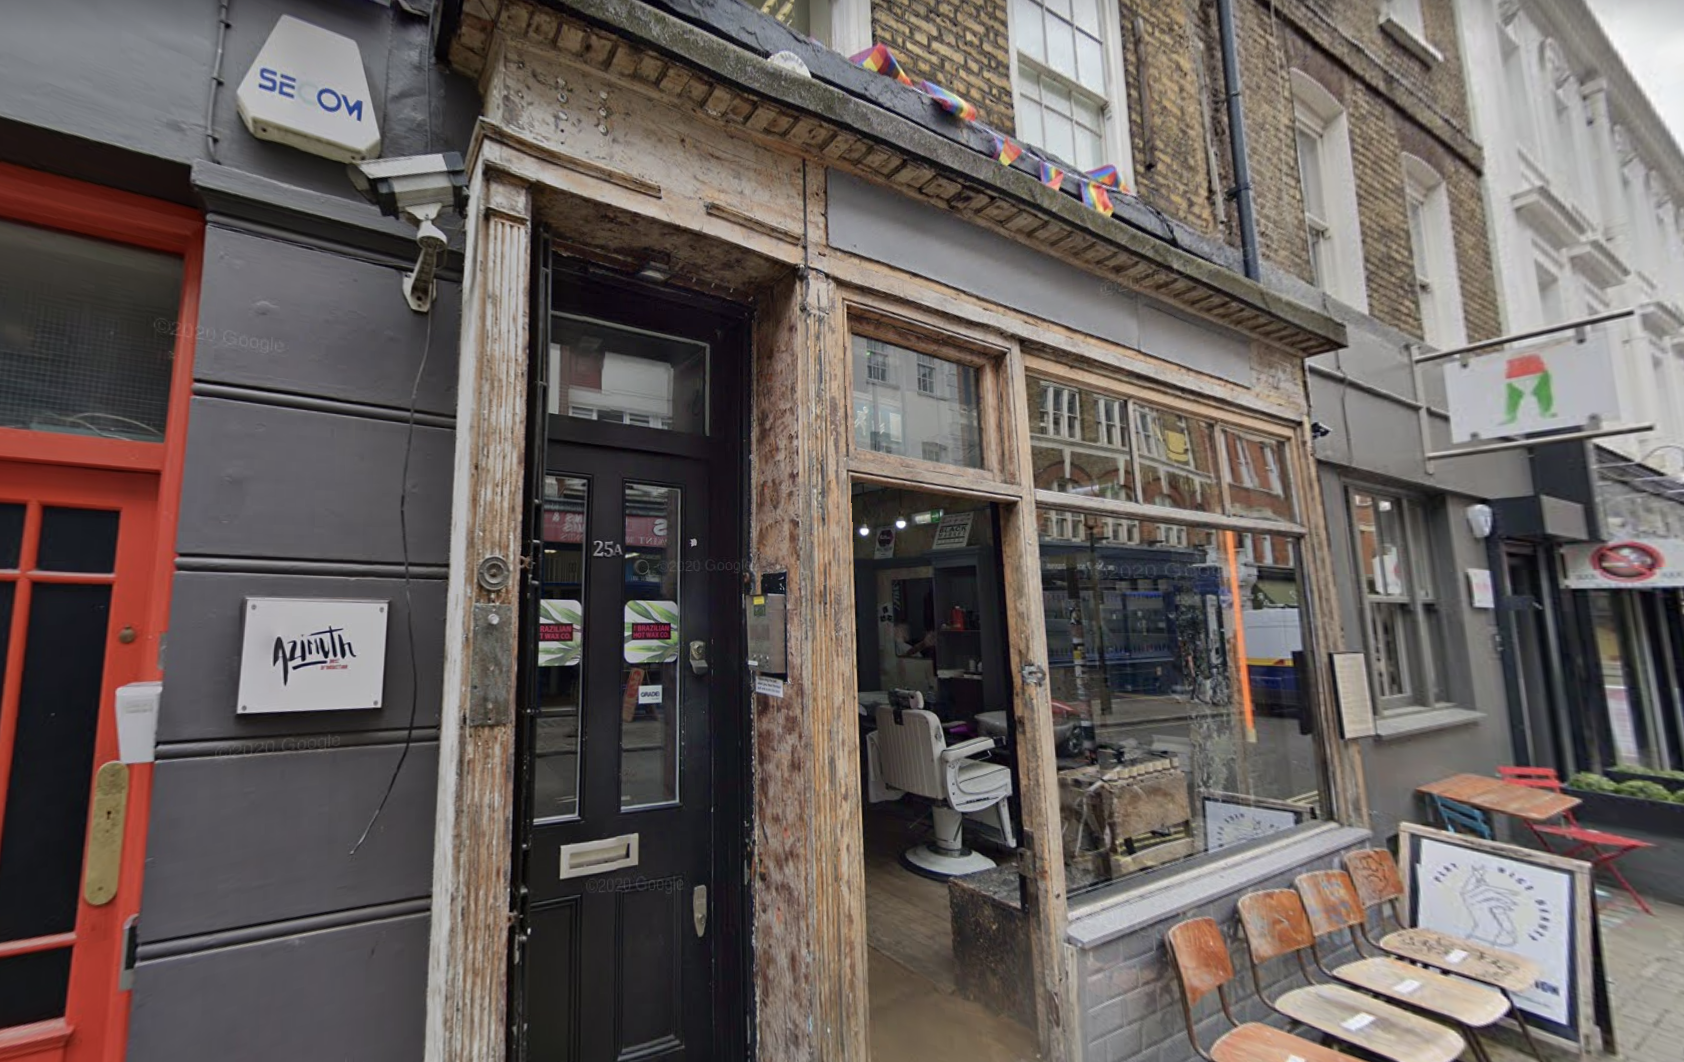 The exterior of the barber shop in Soho. (Google)